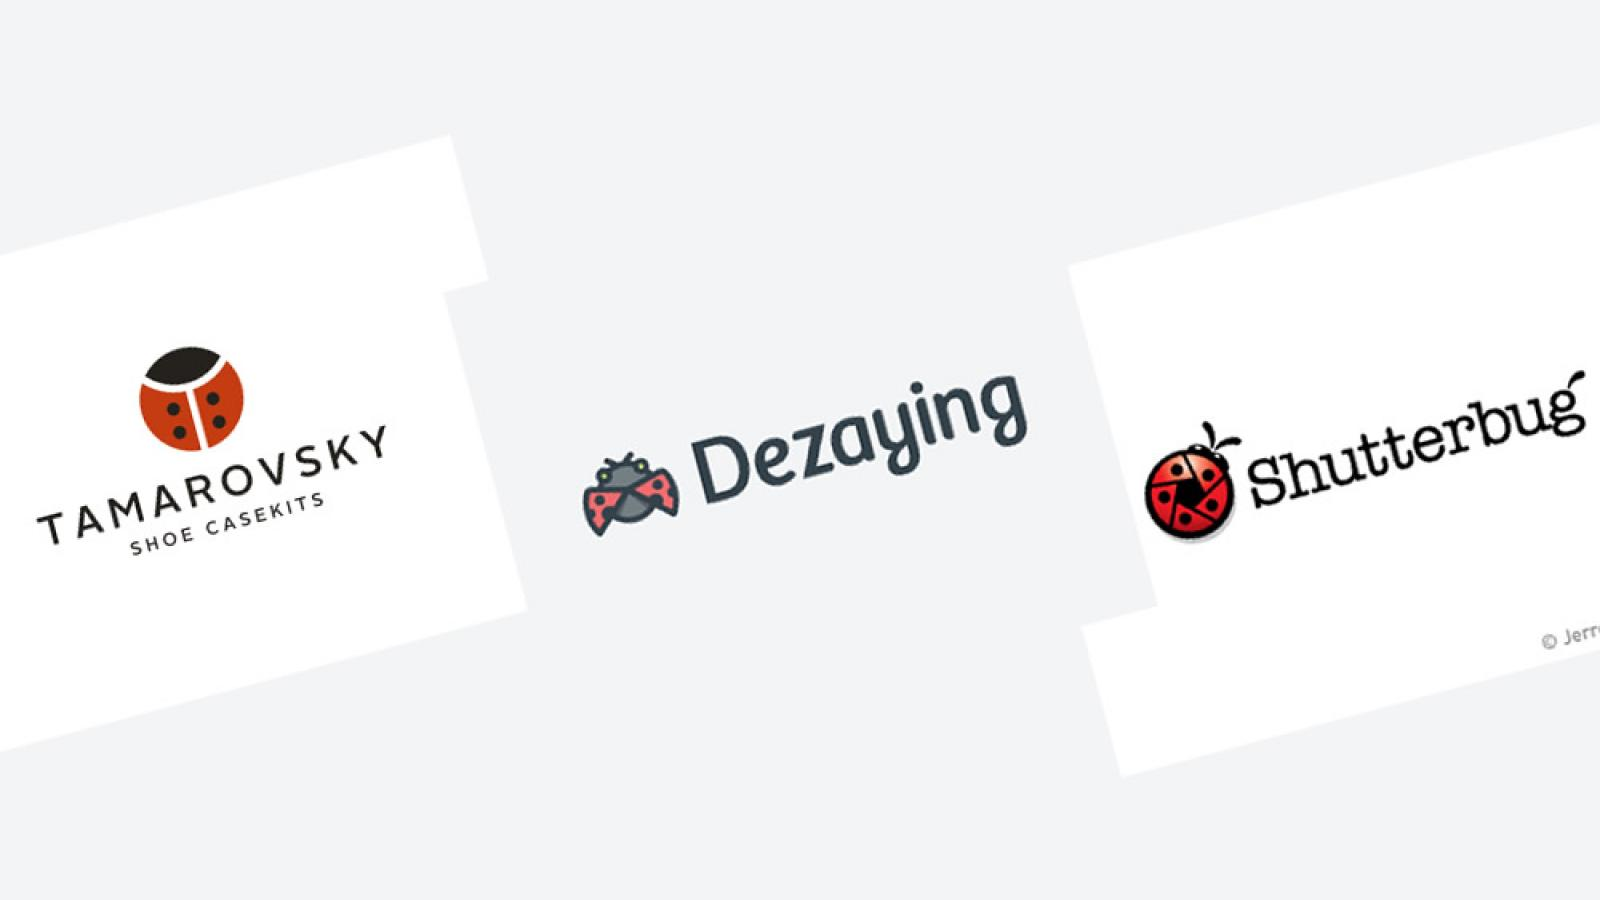 Logo Design: Ladybugs